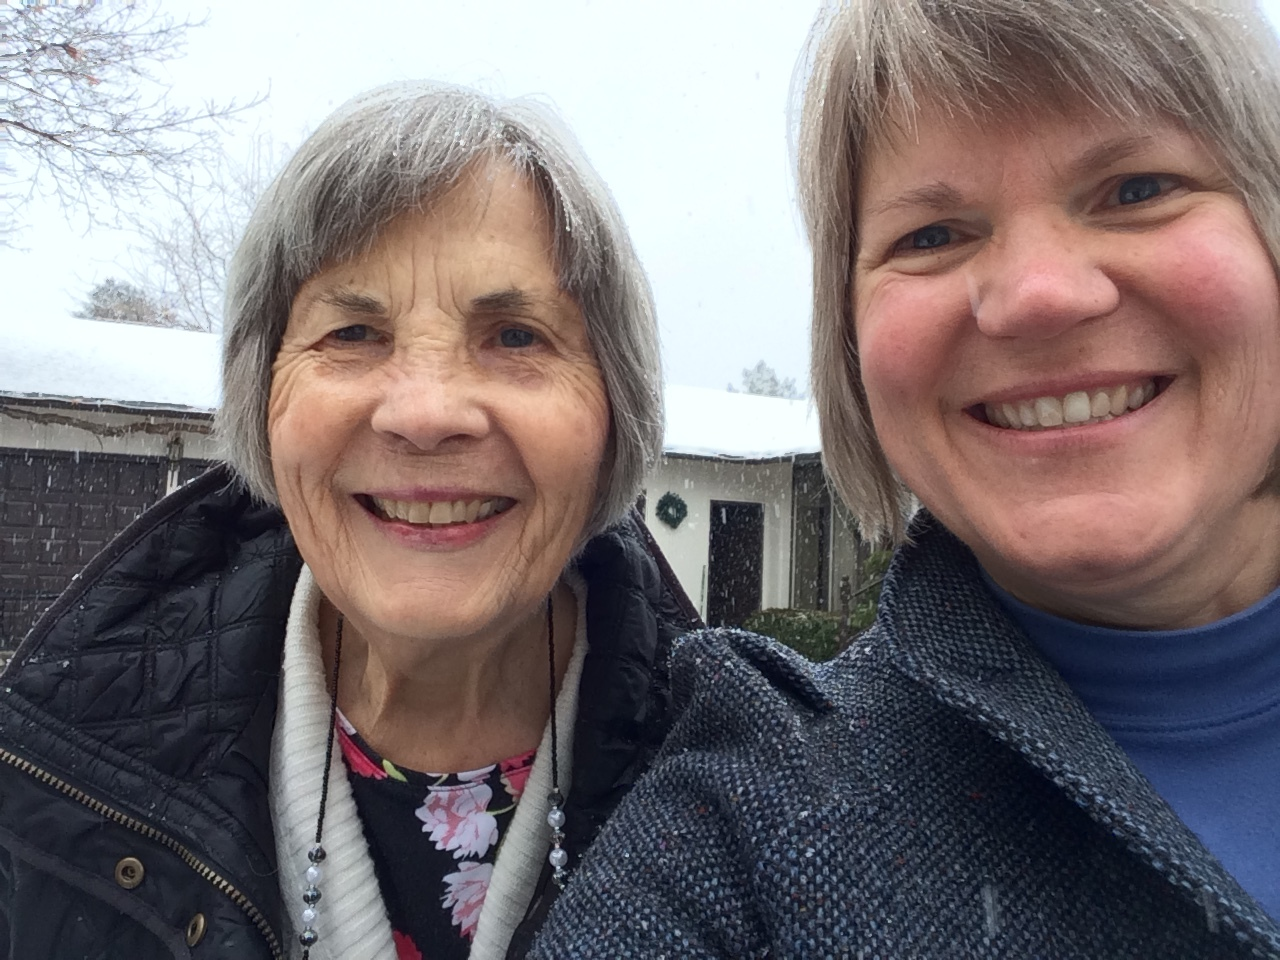 Laurie Berning - is so thankful for our supportive Hood View church family and looks forward to some heavenly vocal harmony lessons because she and her sister were a sore disappointment to their mom who tried to teach them.